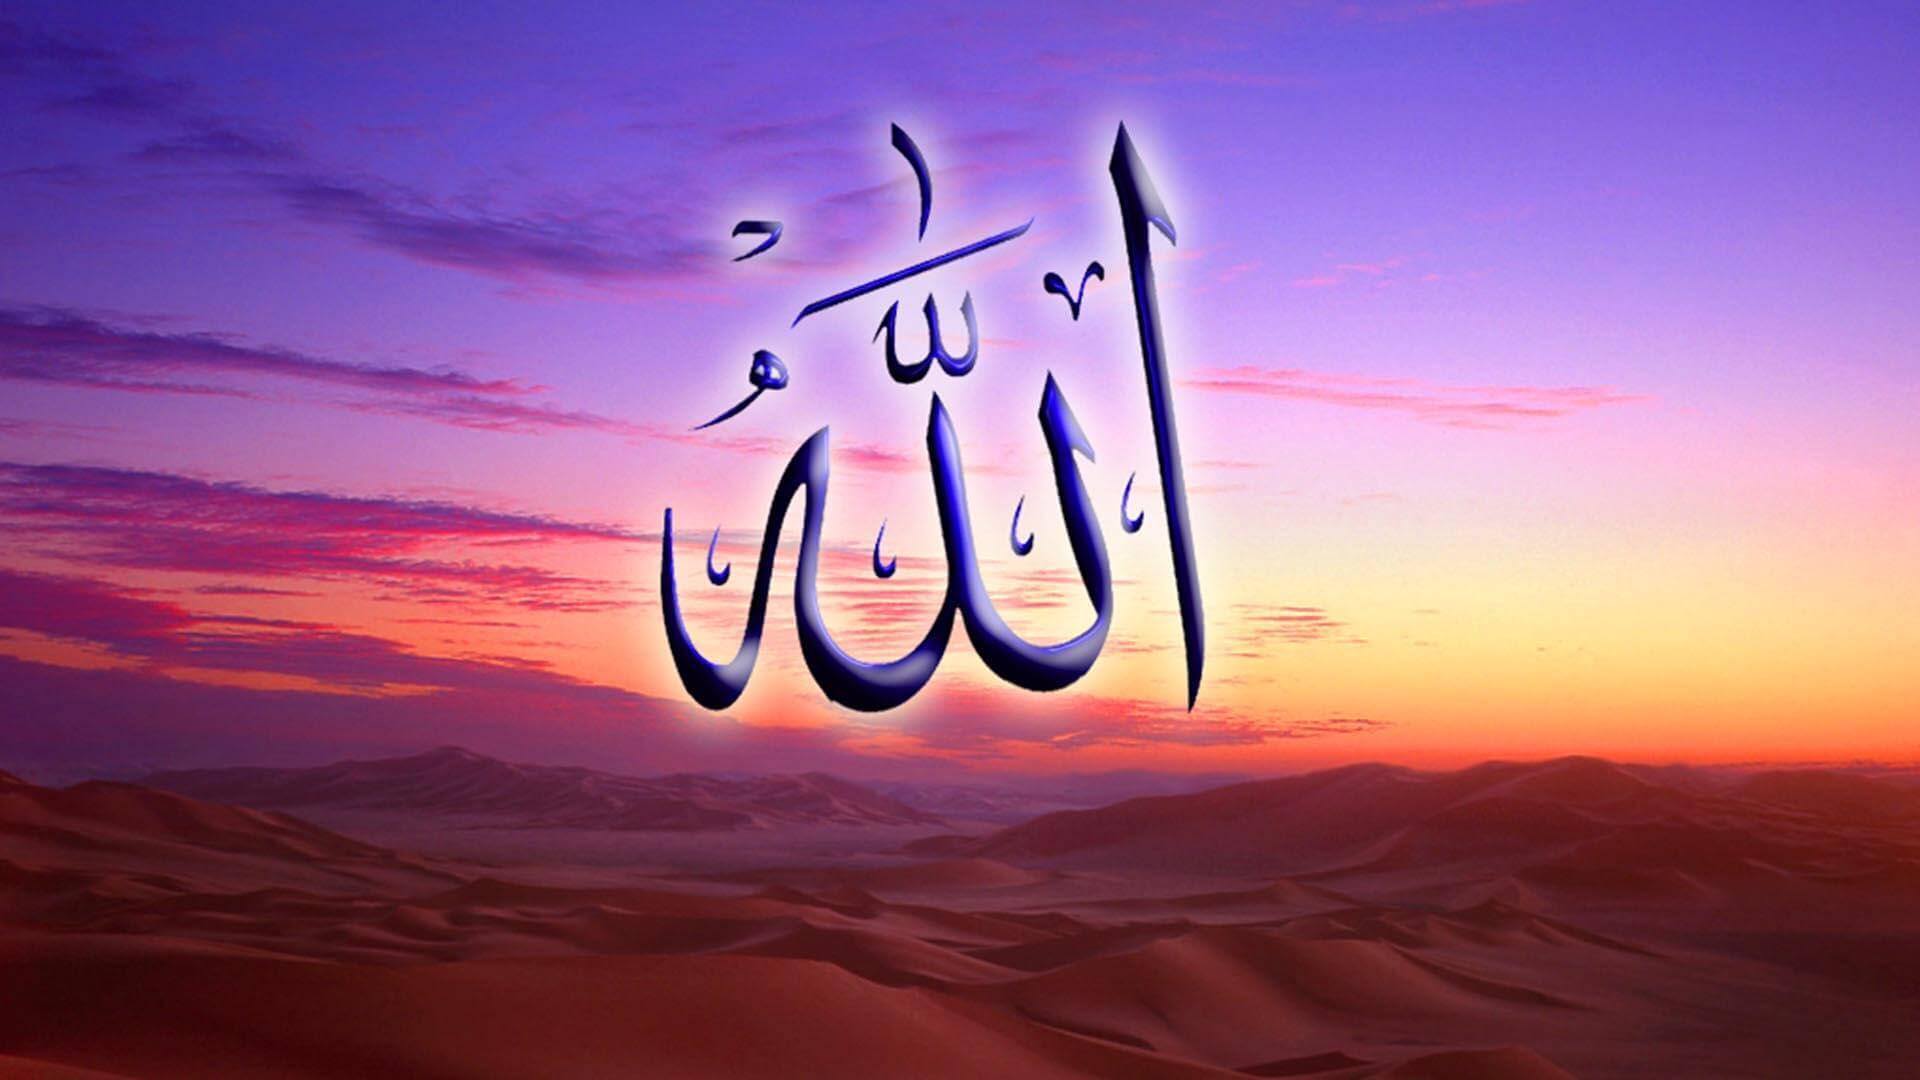 Download 860+ Wallpaper Allah Images HD Terbaru